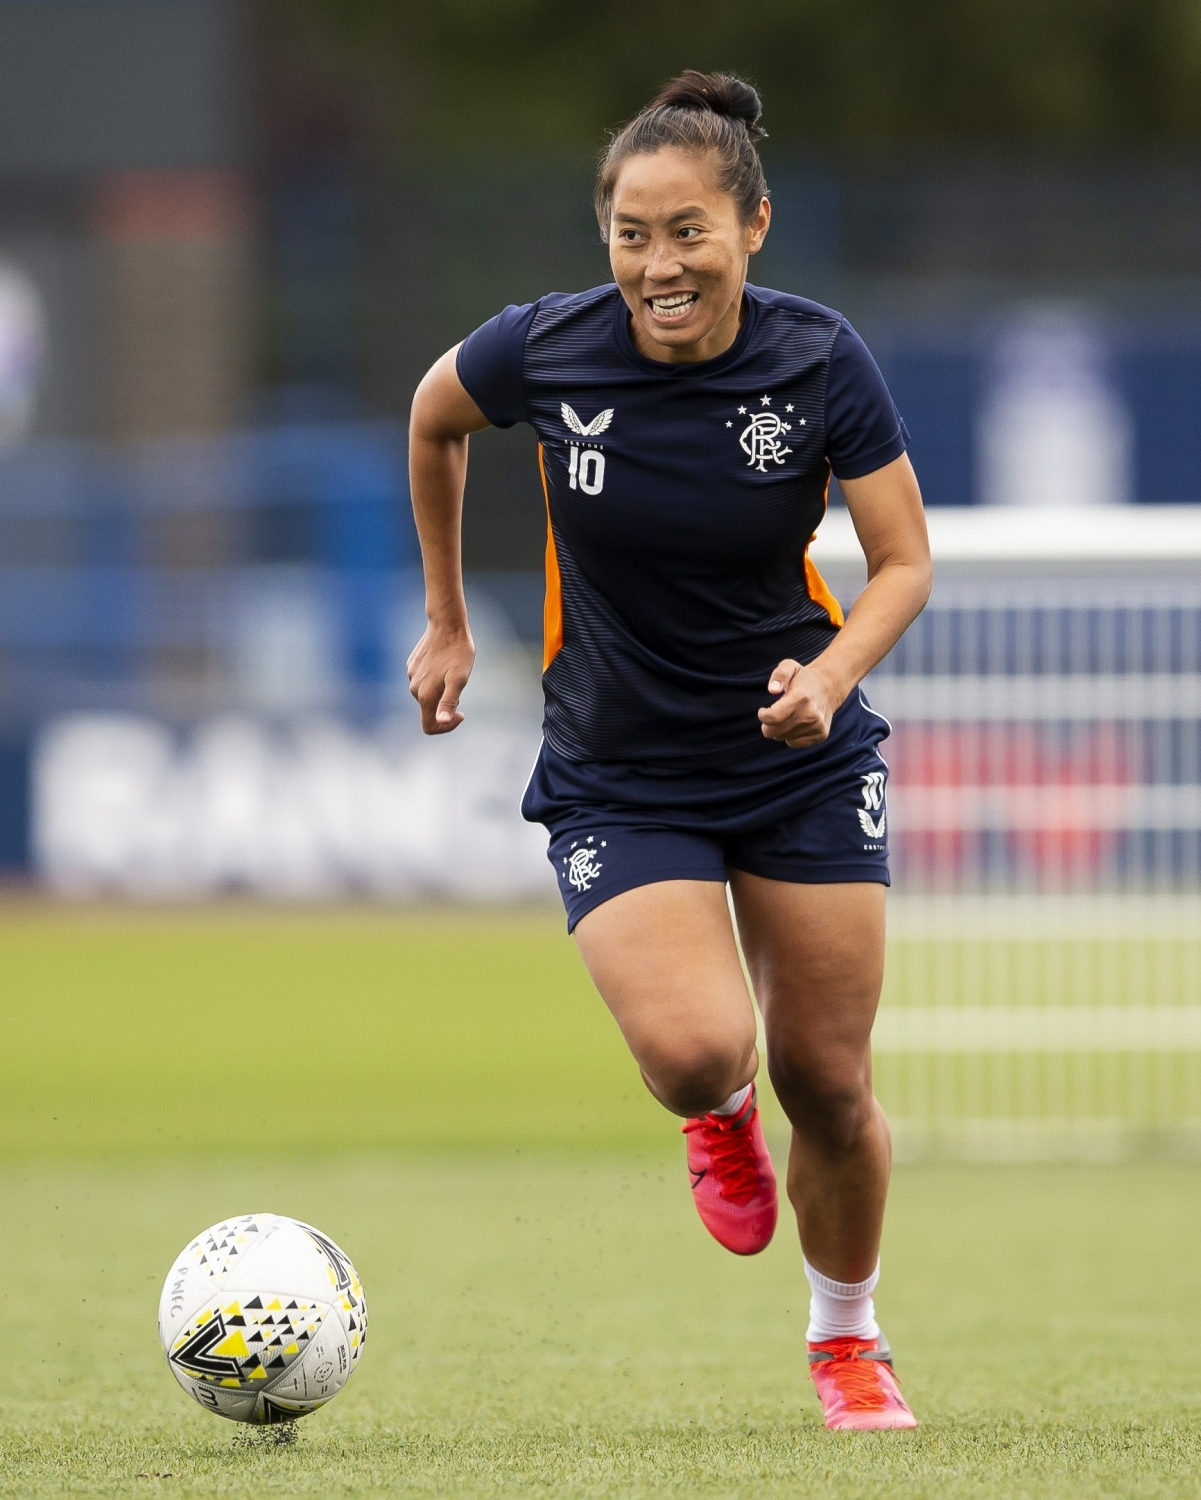 Playing at Rangers 'a whole new experience', says Bala Devi